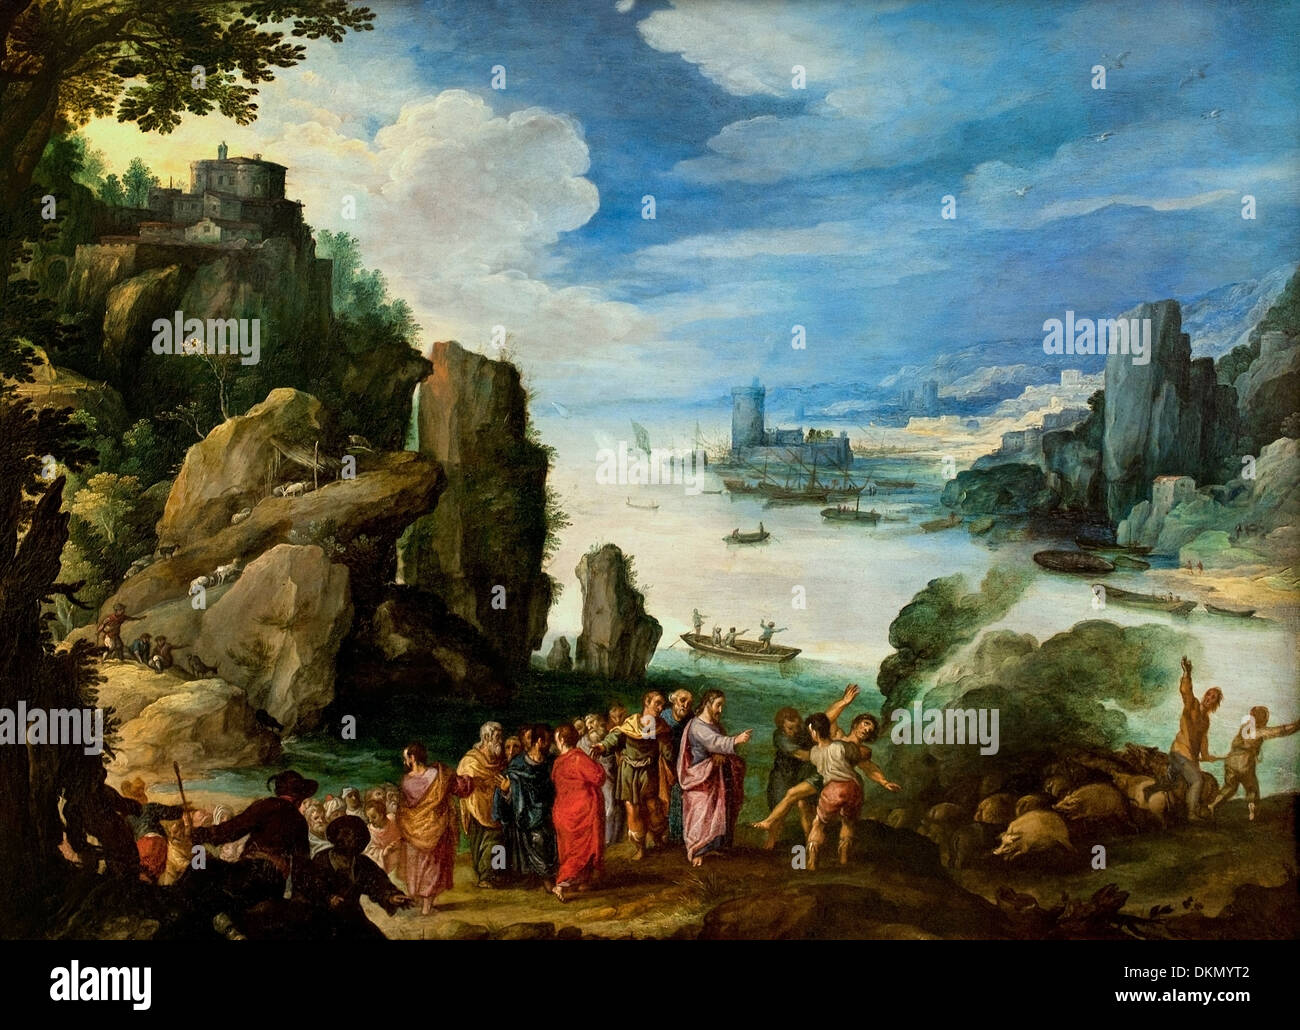 Rocky landscape with the healing of the possessed by Paul Bril 1553-1626 Dutch Netherlands - Stock Image